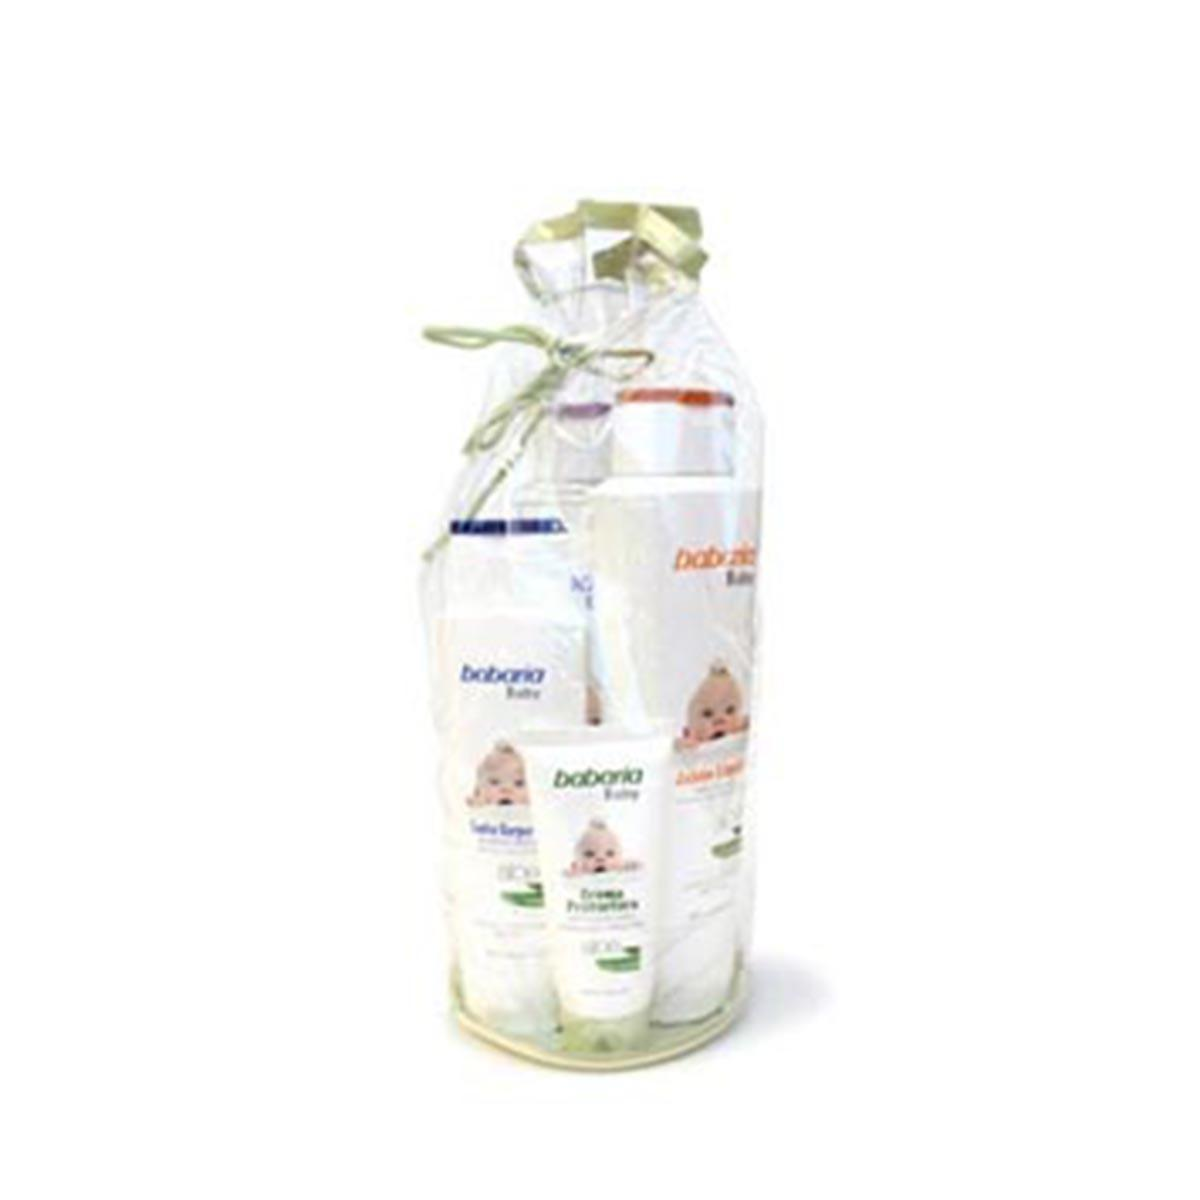 Babaria fragrances Colonia 600ml Baby Soap 600ml Milk 400ml Sunscreen 100ml